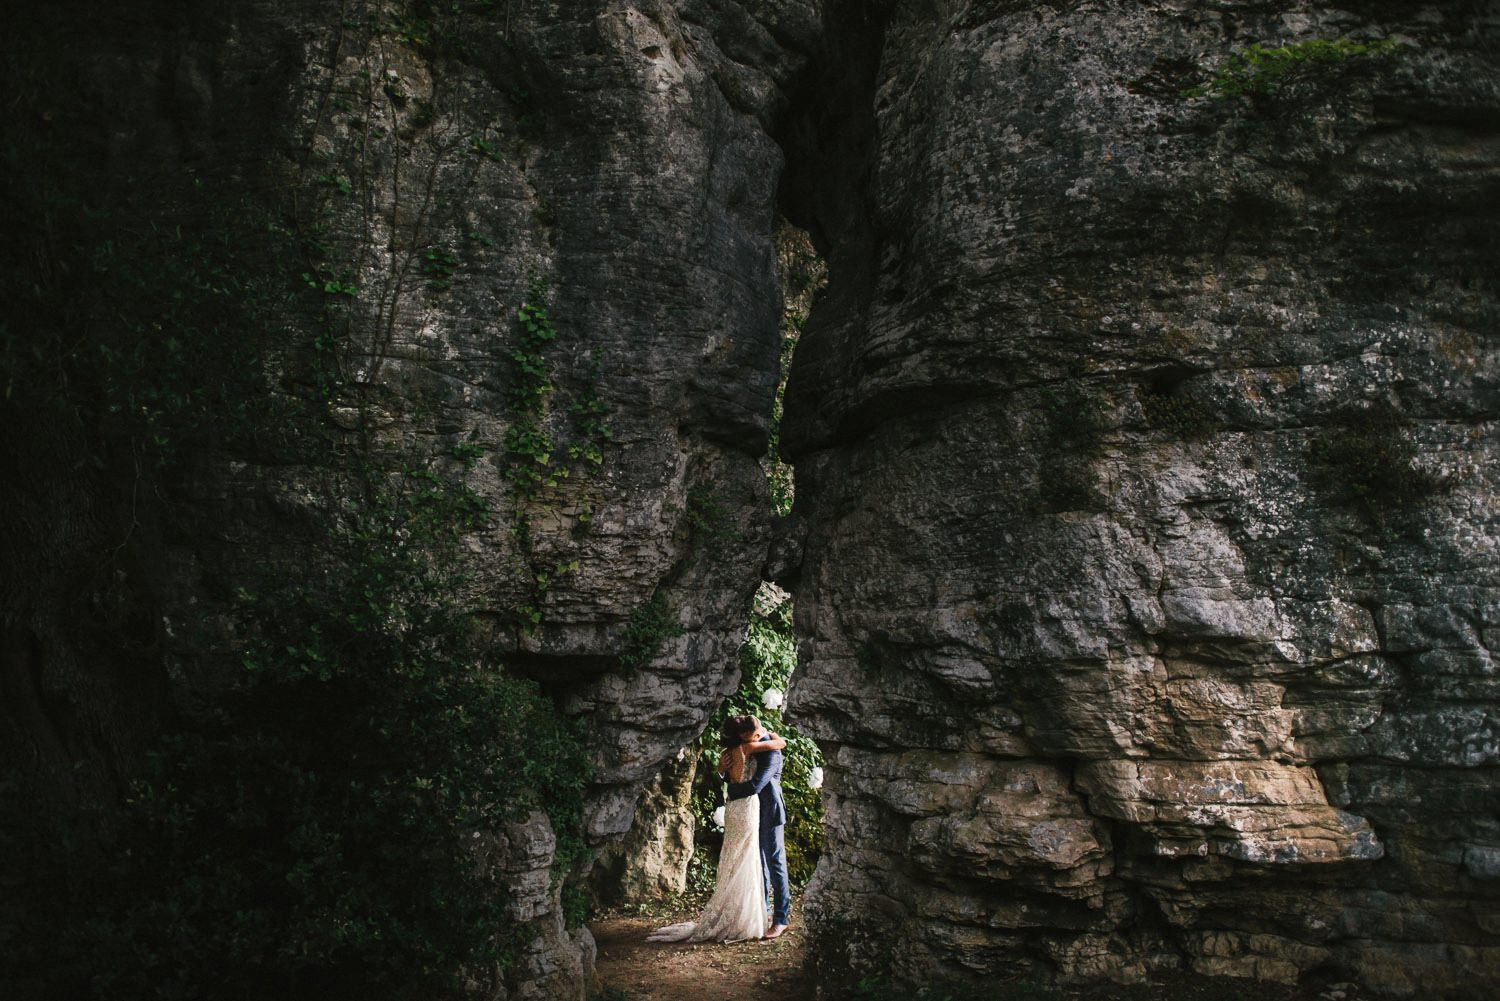 grotto wedding france